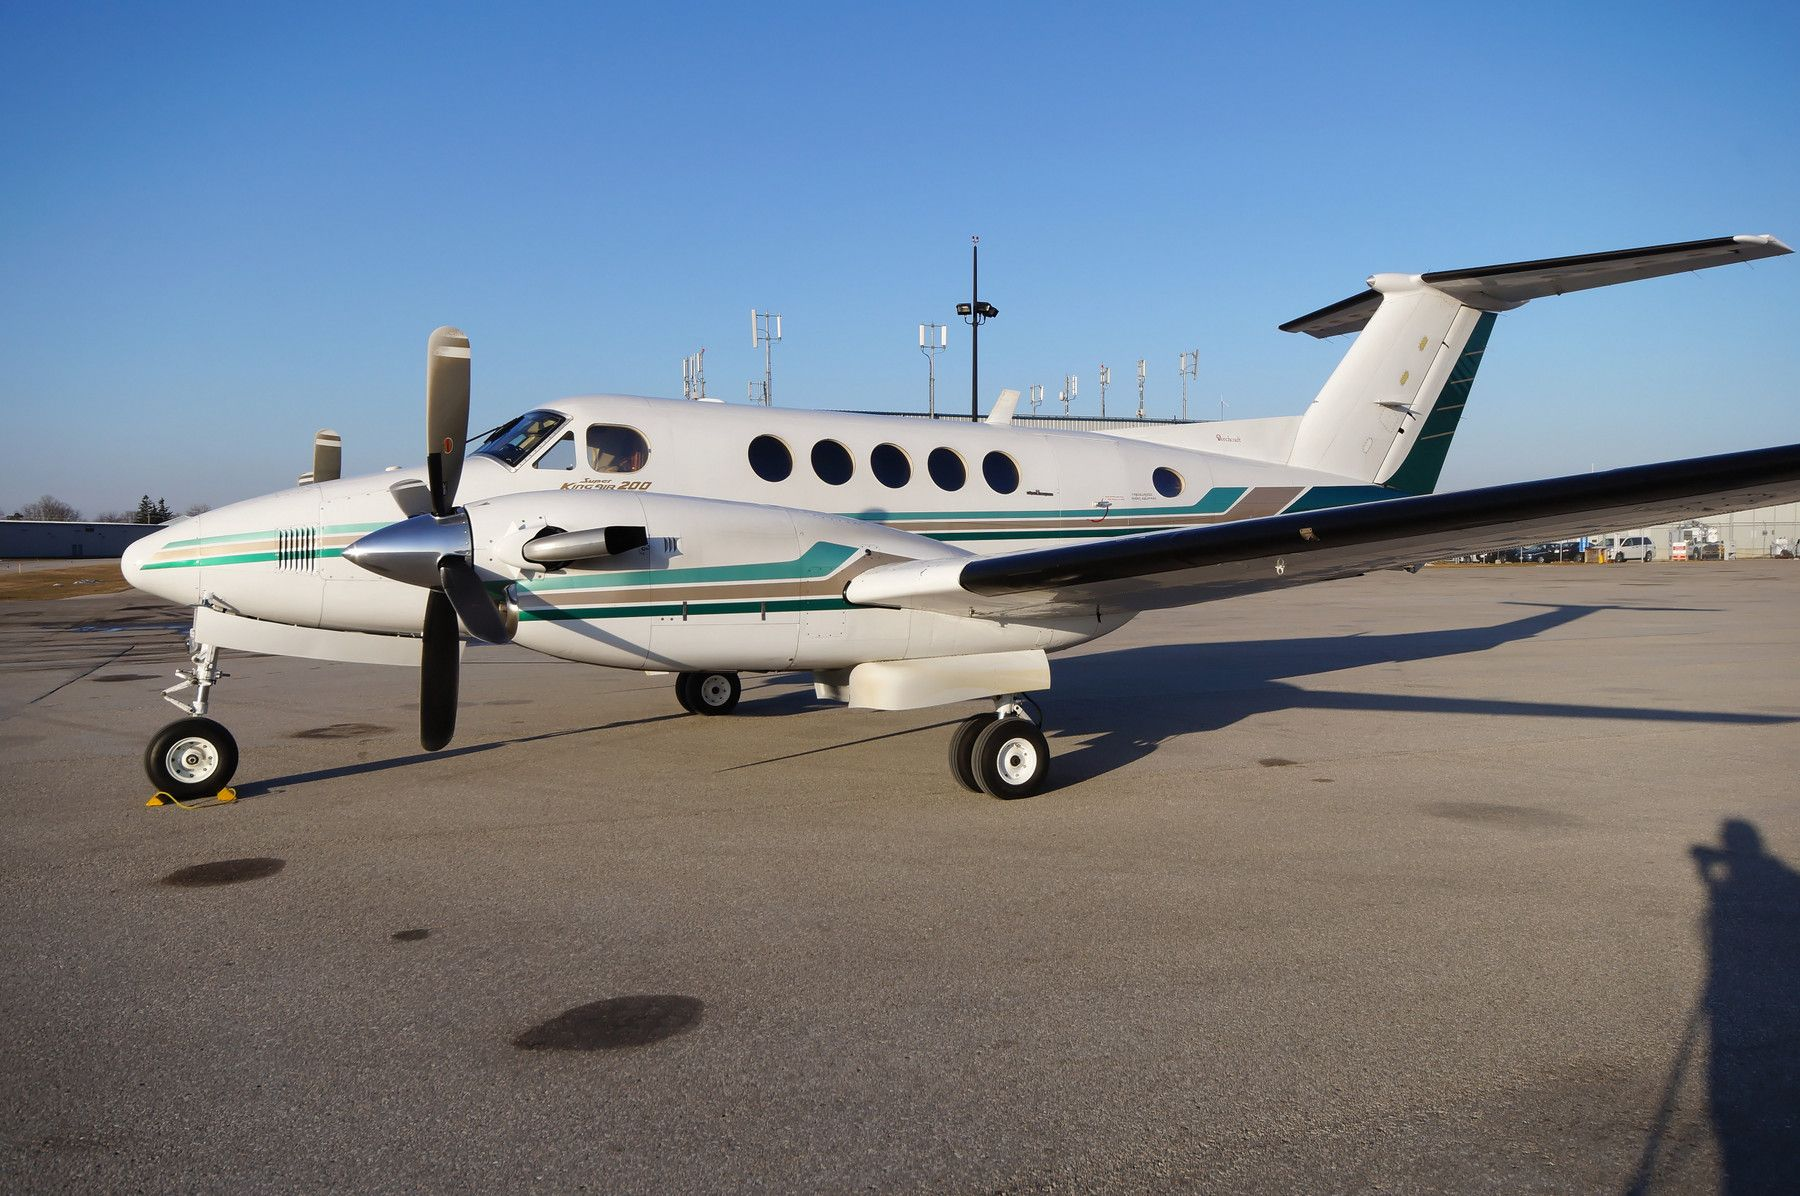 1981 Beechcraft King Air 200 => Airplane for sale, Used